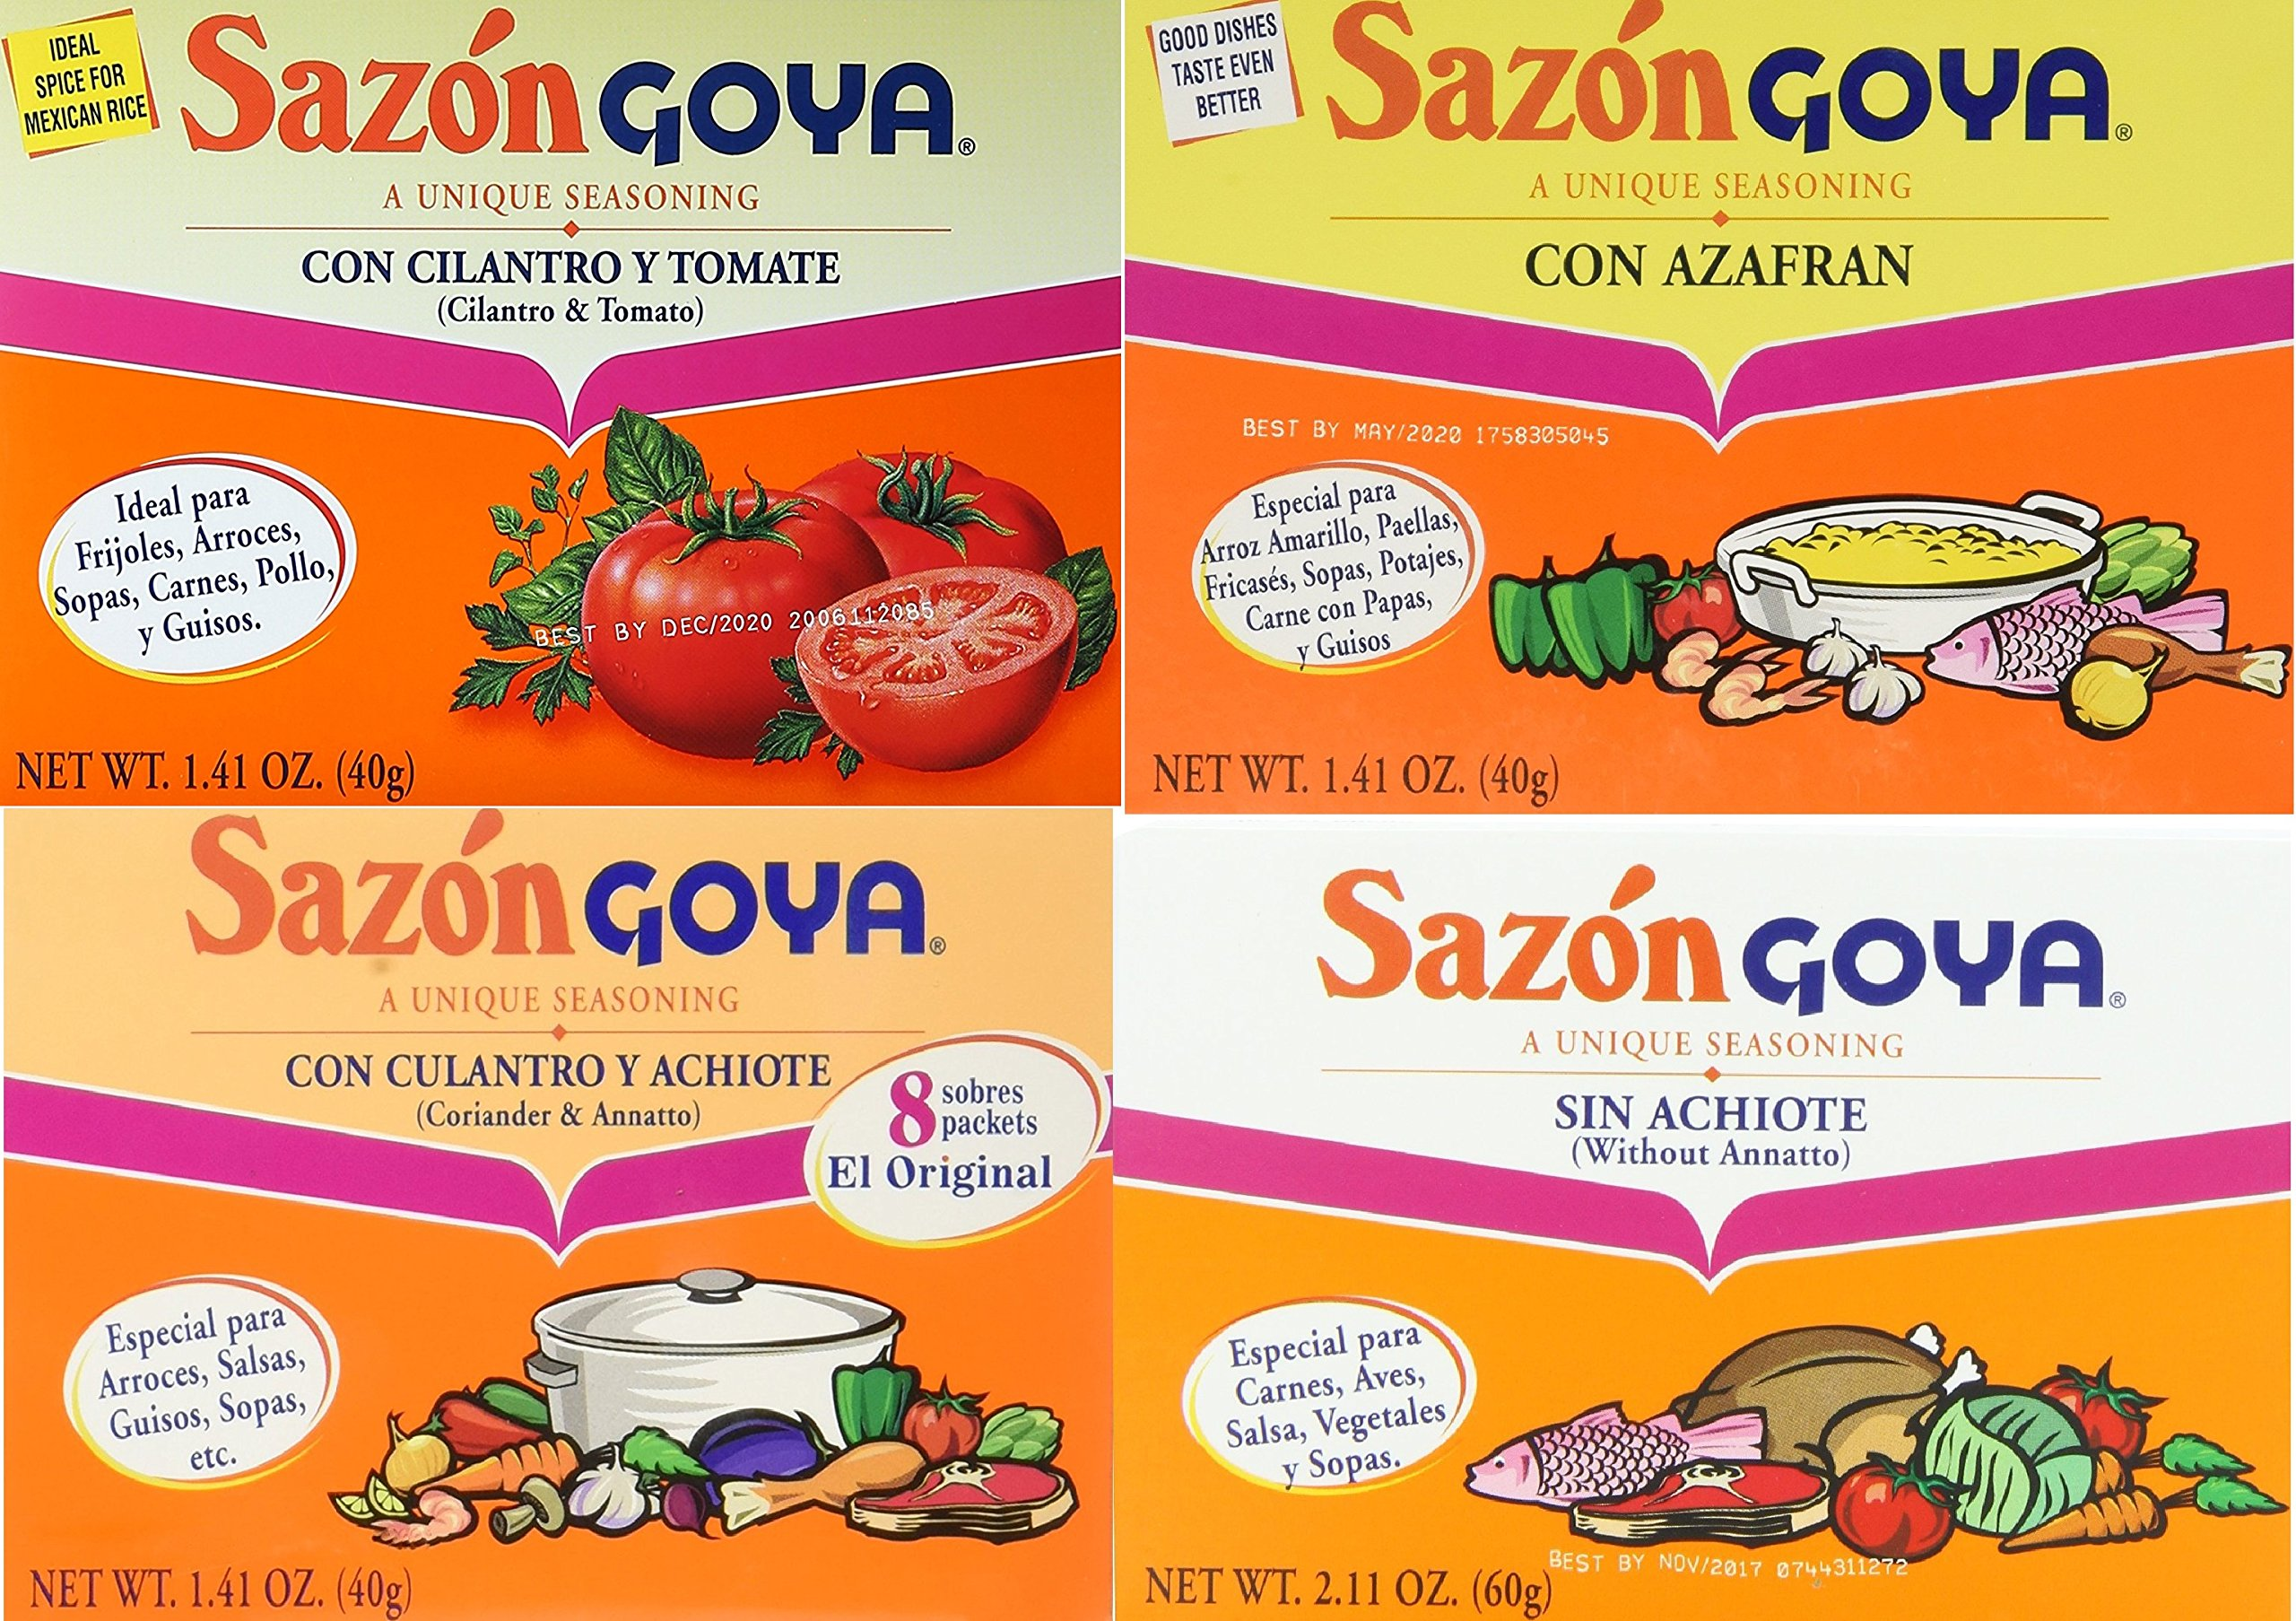 Sazon Goya Unique Seasoning Variety 4-Pack Bundle, Culantro Y Achiote (with Coriander